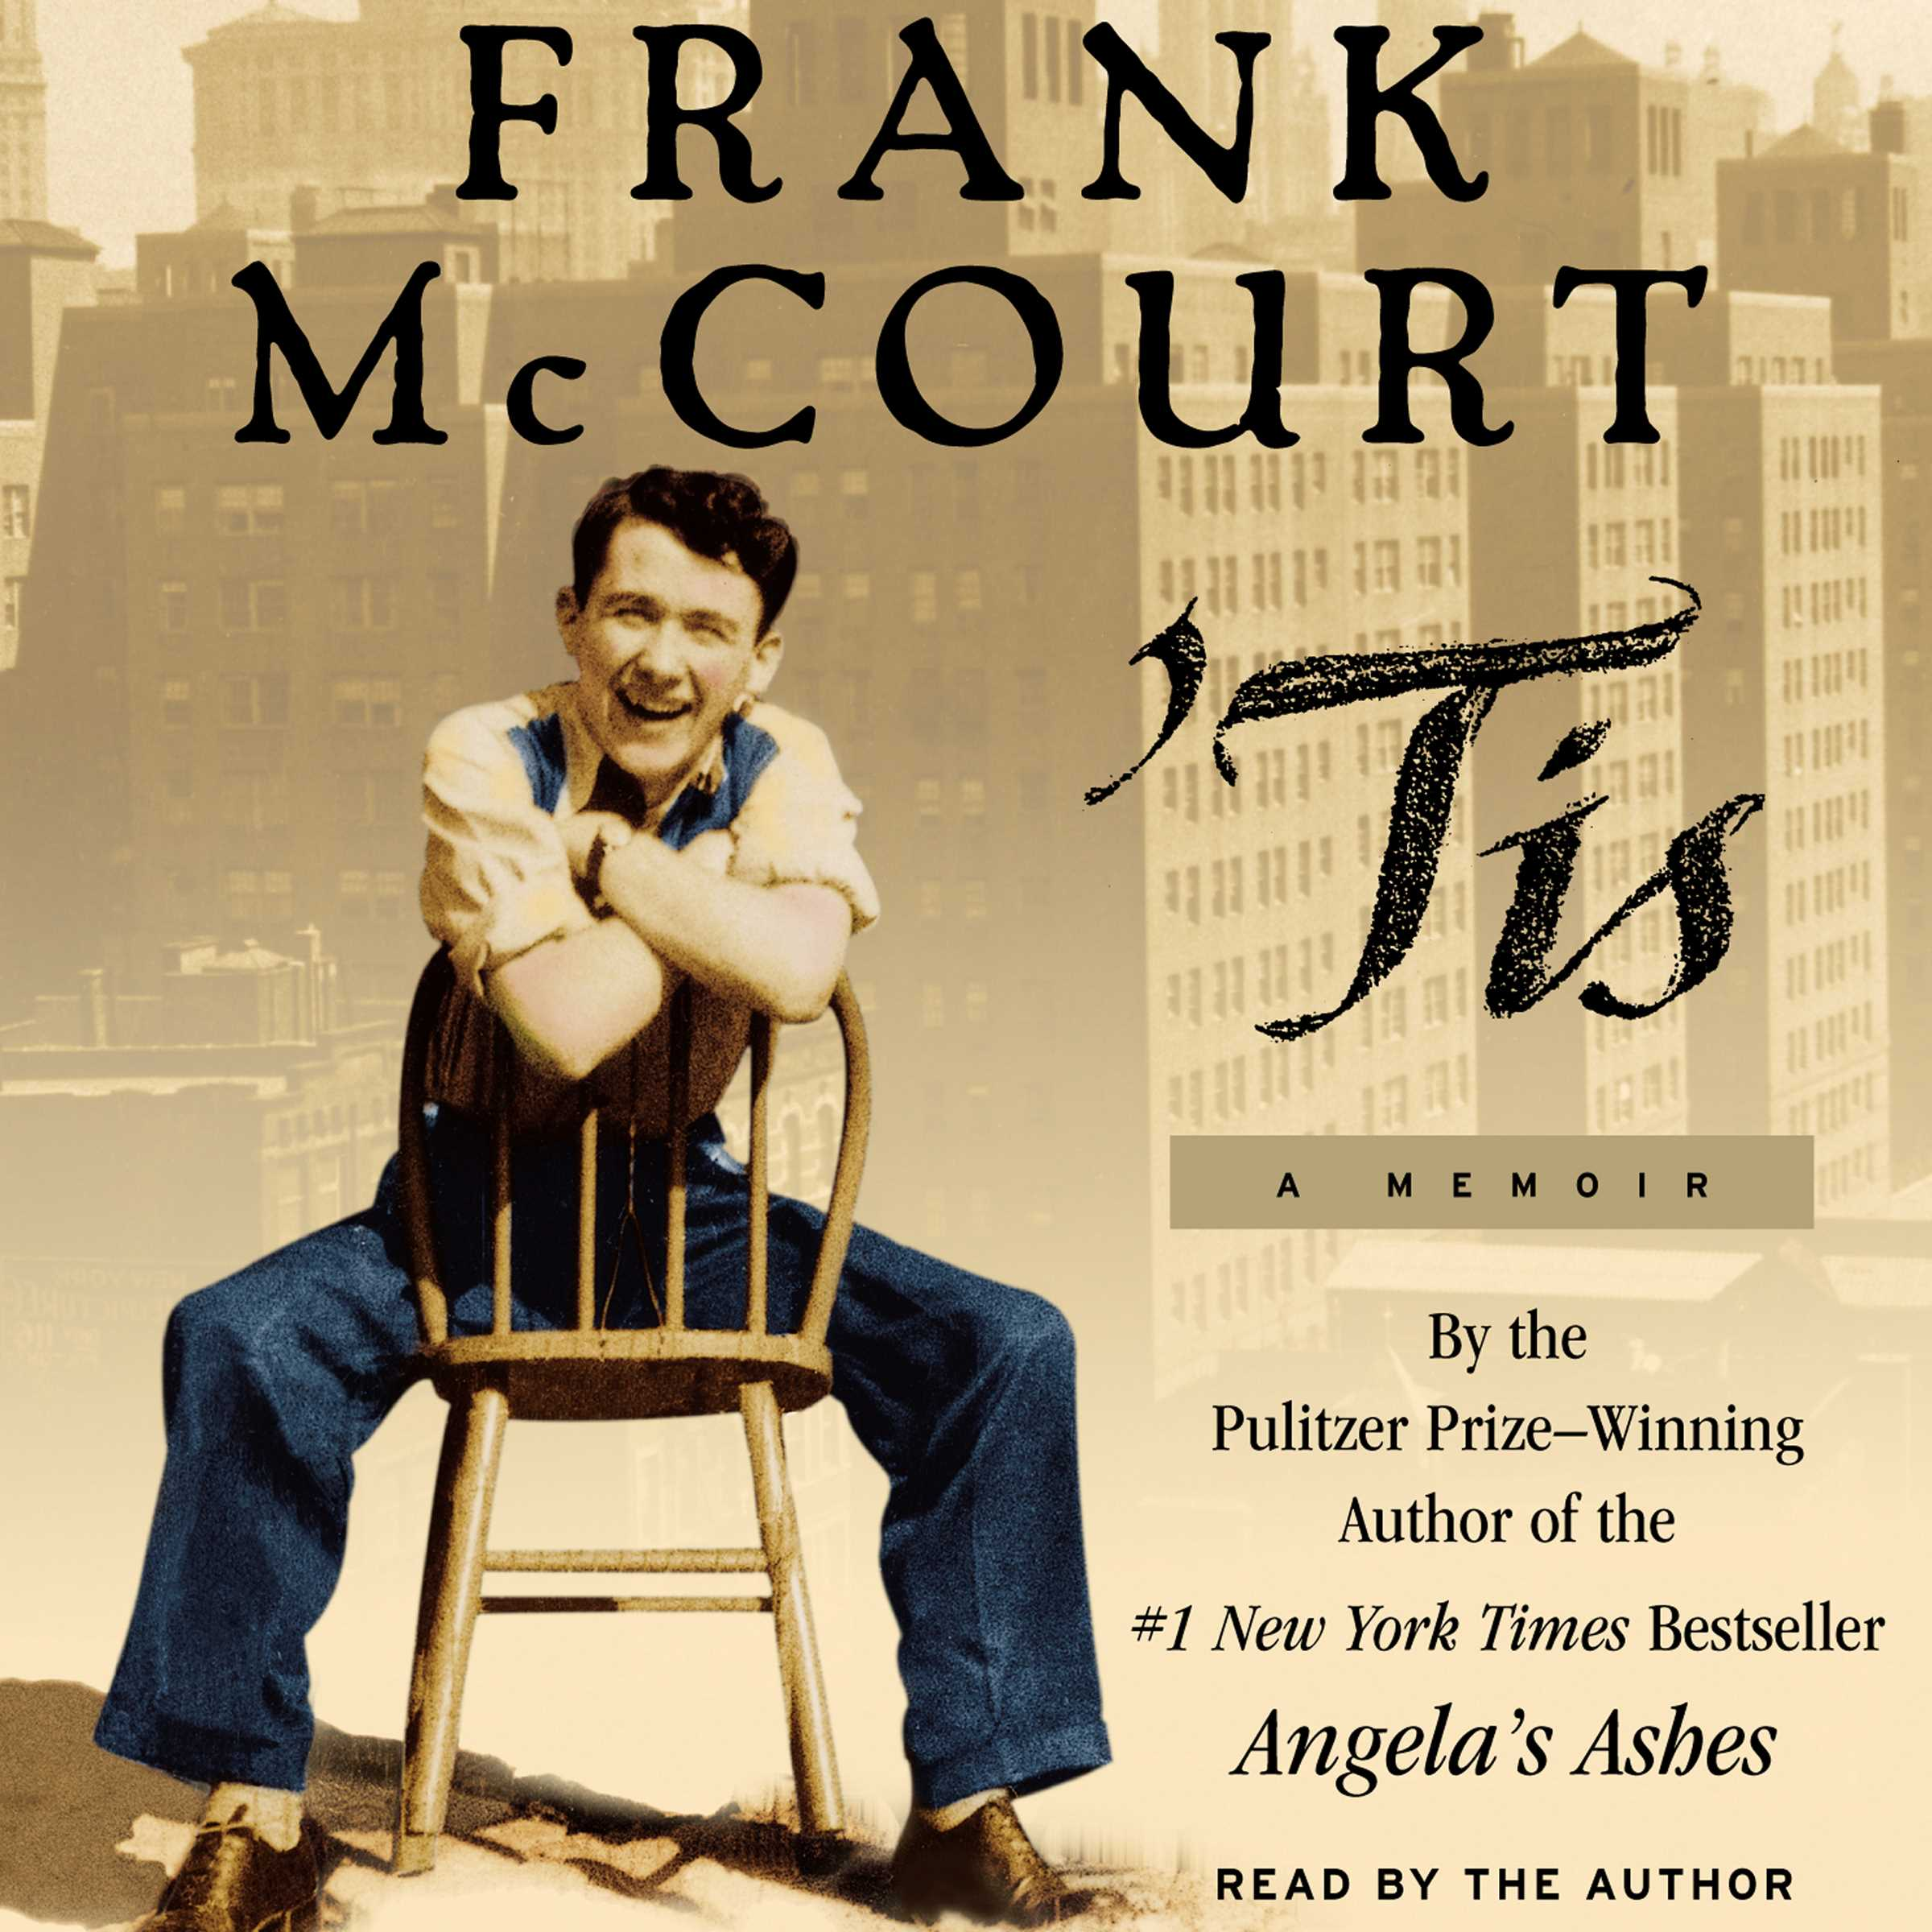 courage and humanity in angelas ashes by frank mccourt Angela's ashes: a memoir by frank mccourt paperback i recommend angelas ashes by frank mccourt thoughts on angela's ashes in general,i was overwhelmed by the book and what i understood to be a realistic portrayal of frank mcourt's upbringing the courage and his persistence in every day.